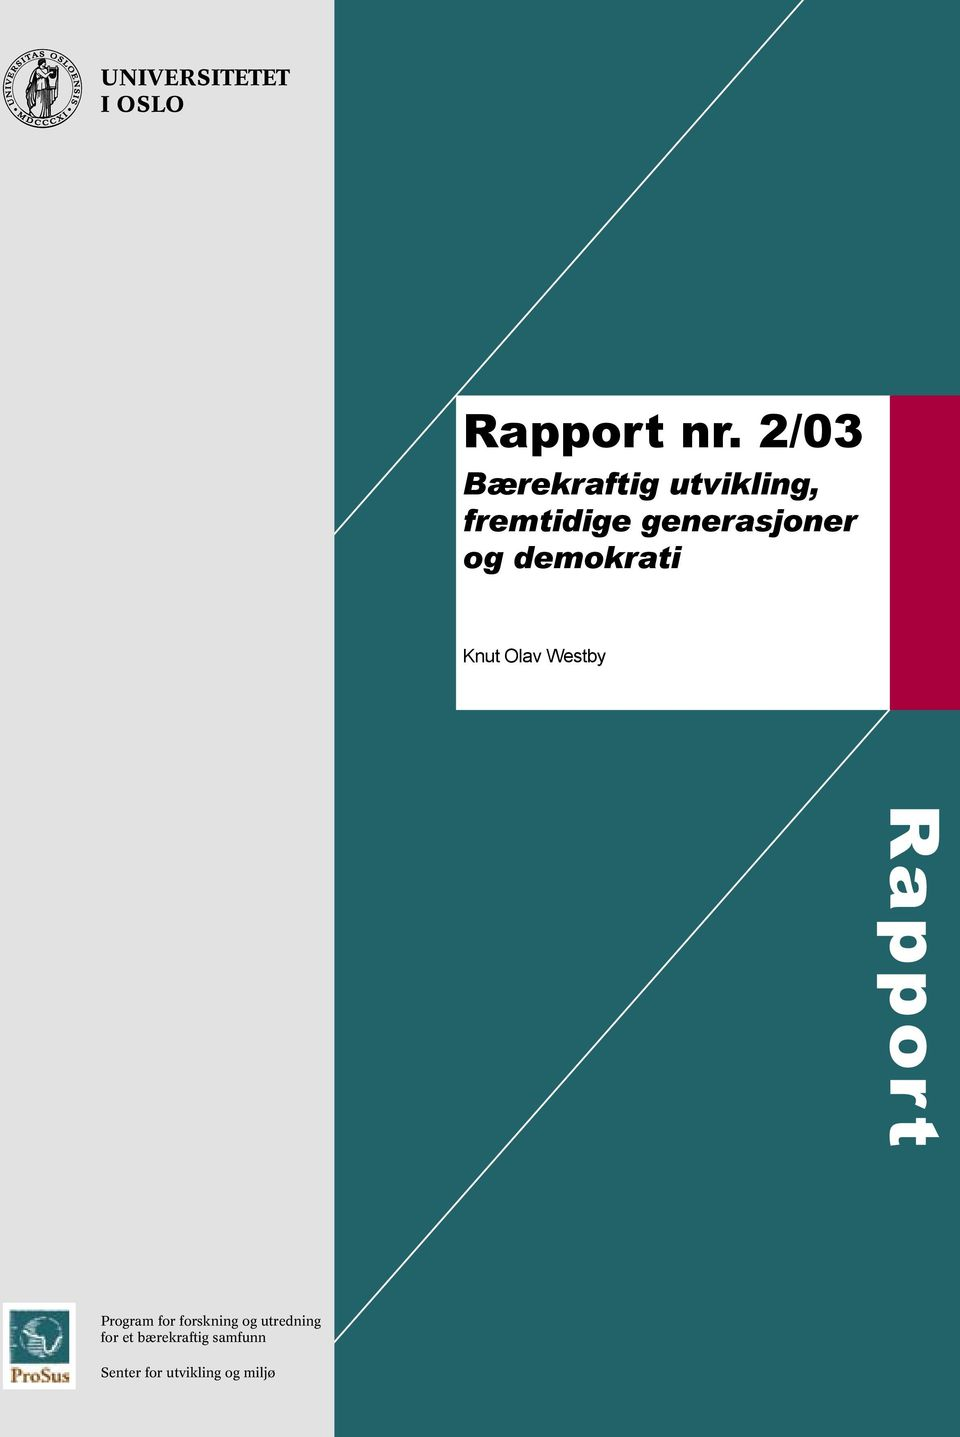 og demokrati Knut Olav Westby Rapport Program for